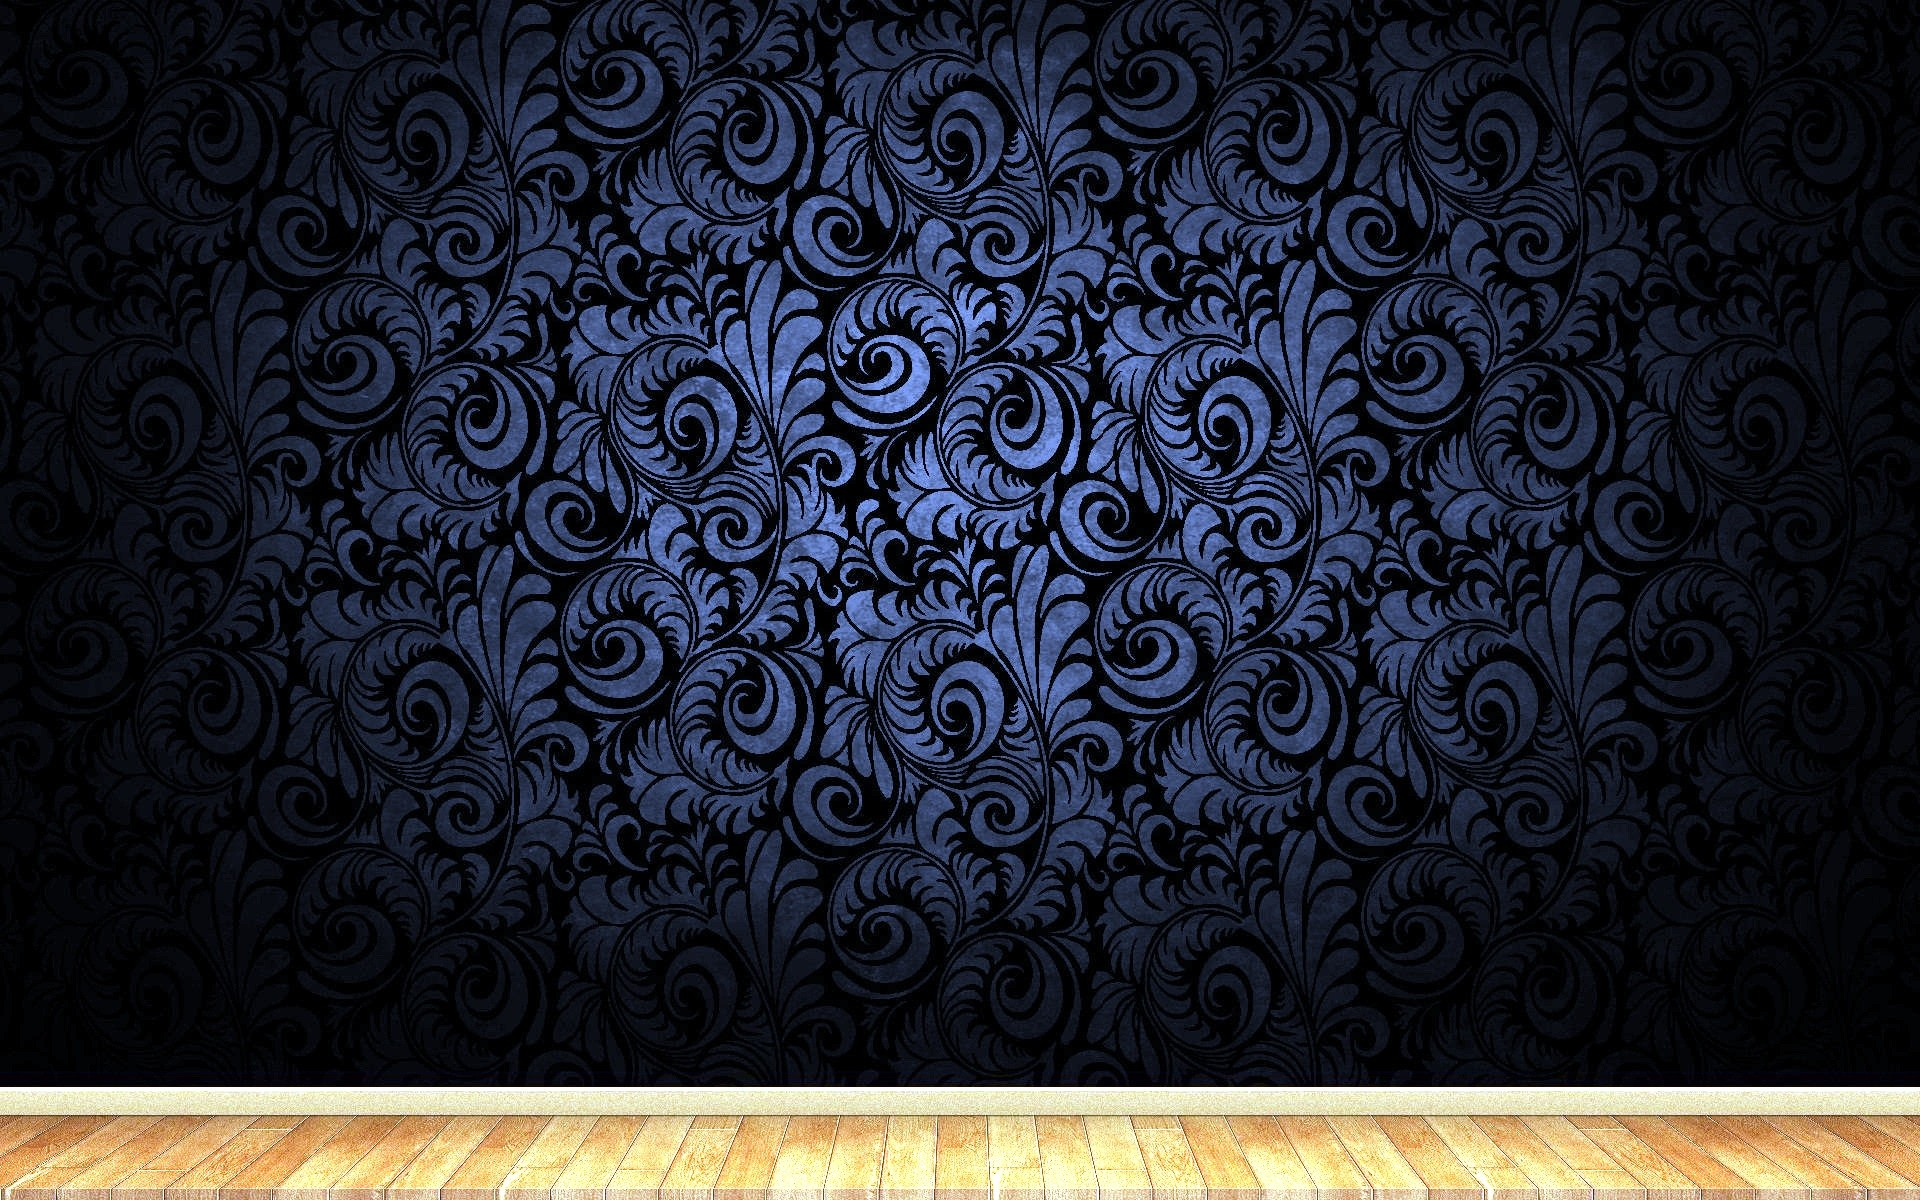 Res: 1920x1200, Flowery design on black abstract wallpapers